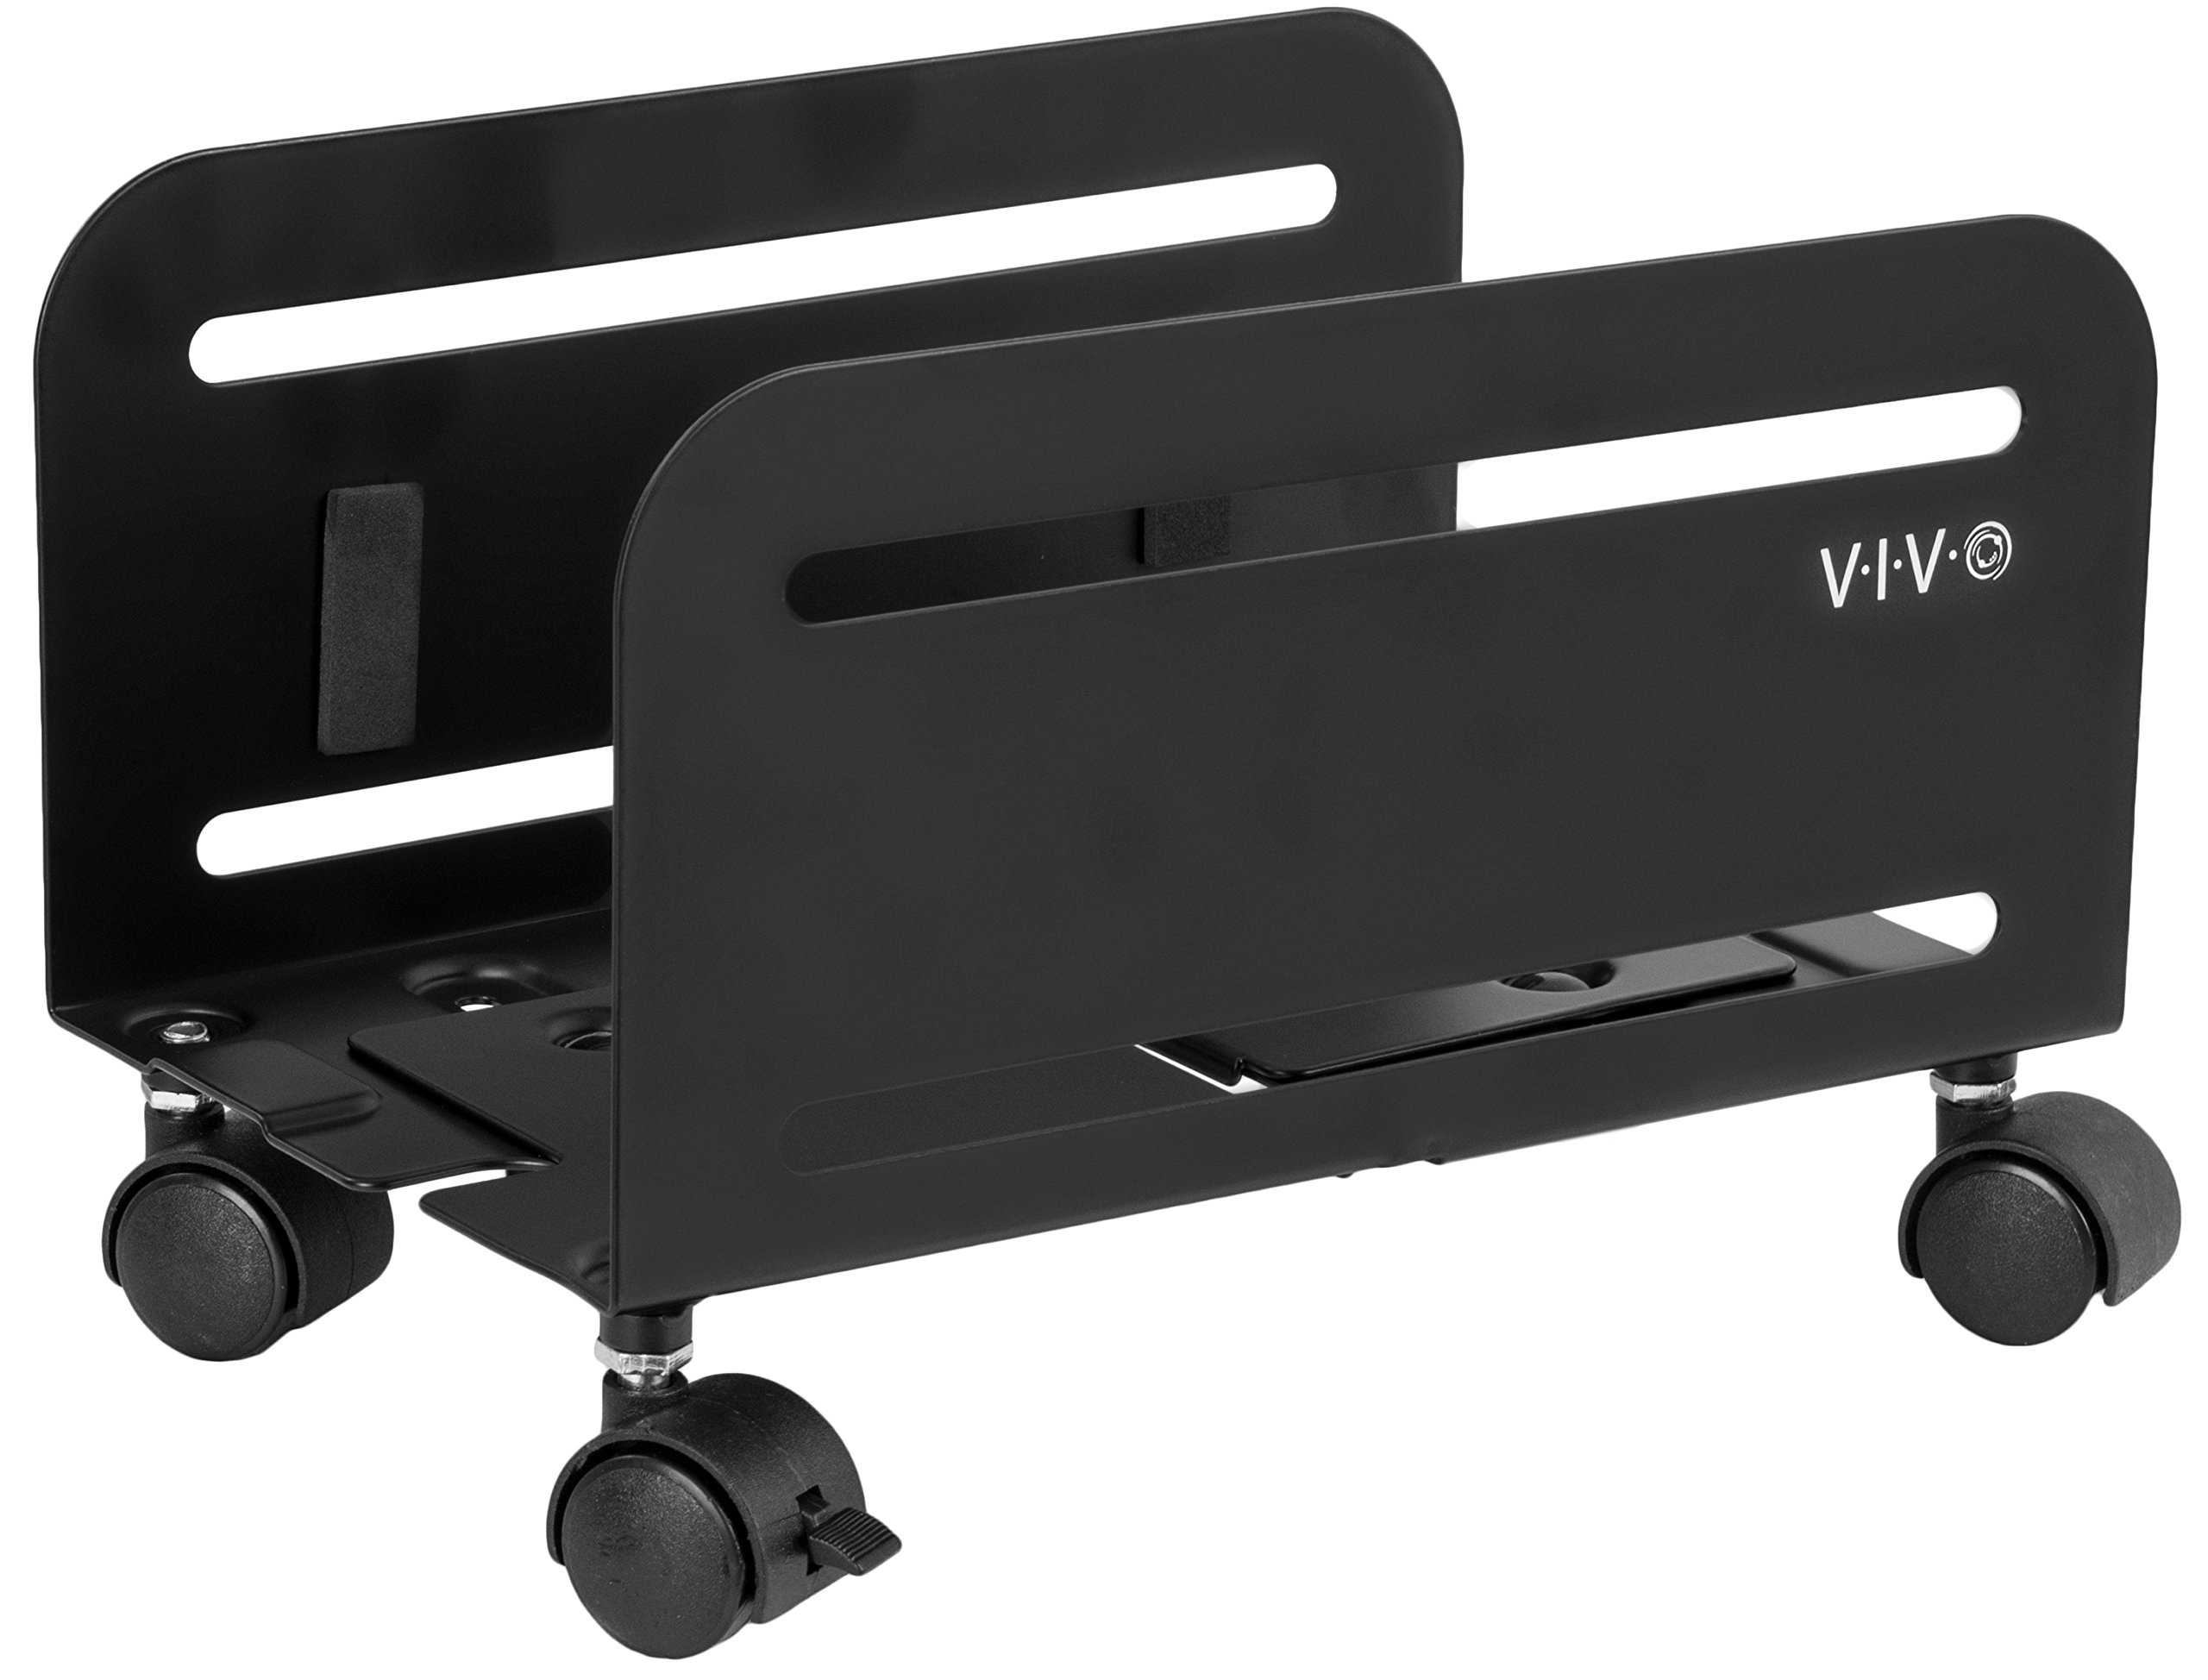 VIVO Black Computer Tower Desktop ATX-Case, CPU Steel Rolling Stand, Adjustable Mobile Cart Holder with Locking Caster Wheels (CART-PC01) by VIVO